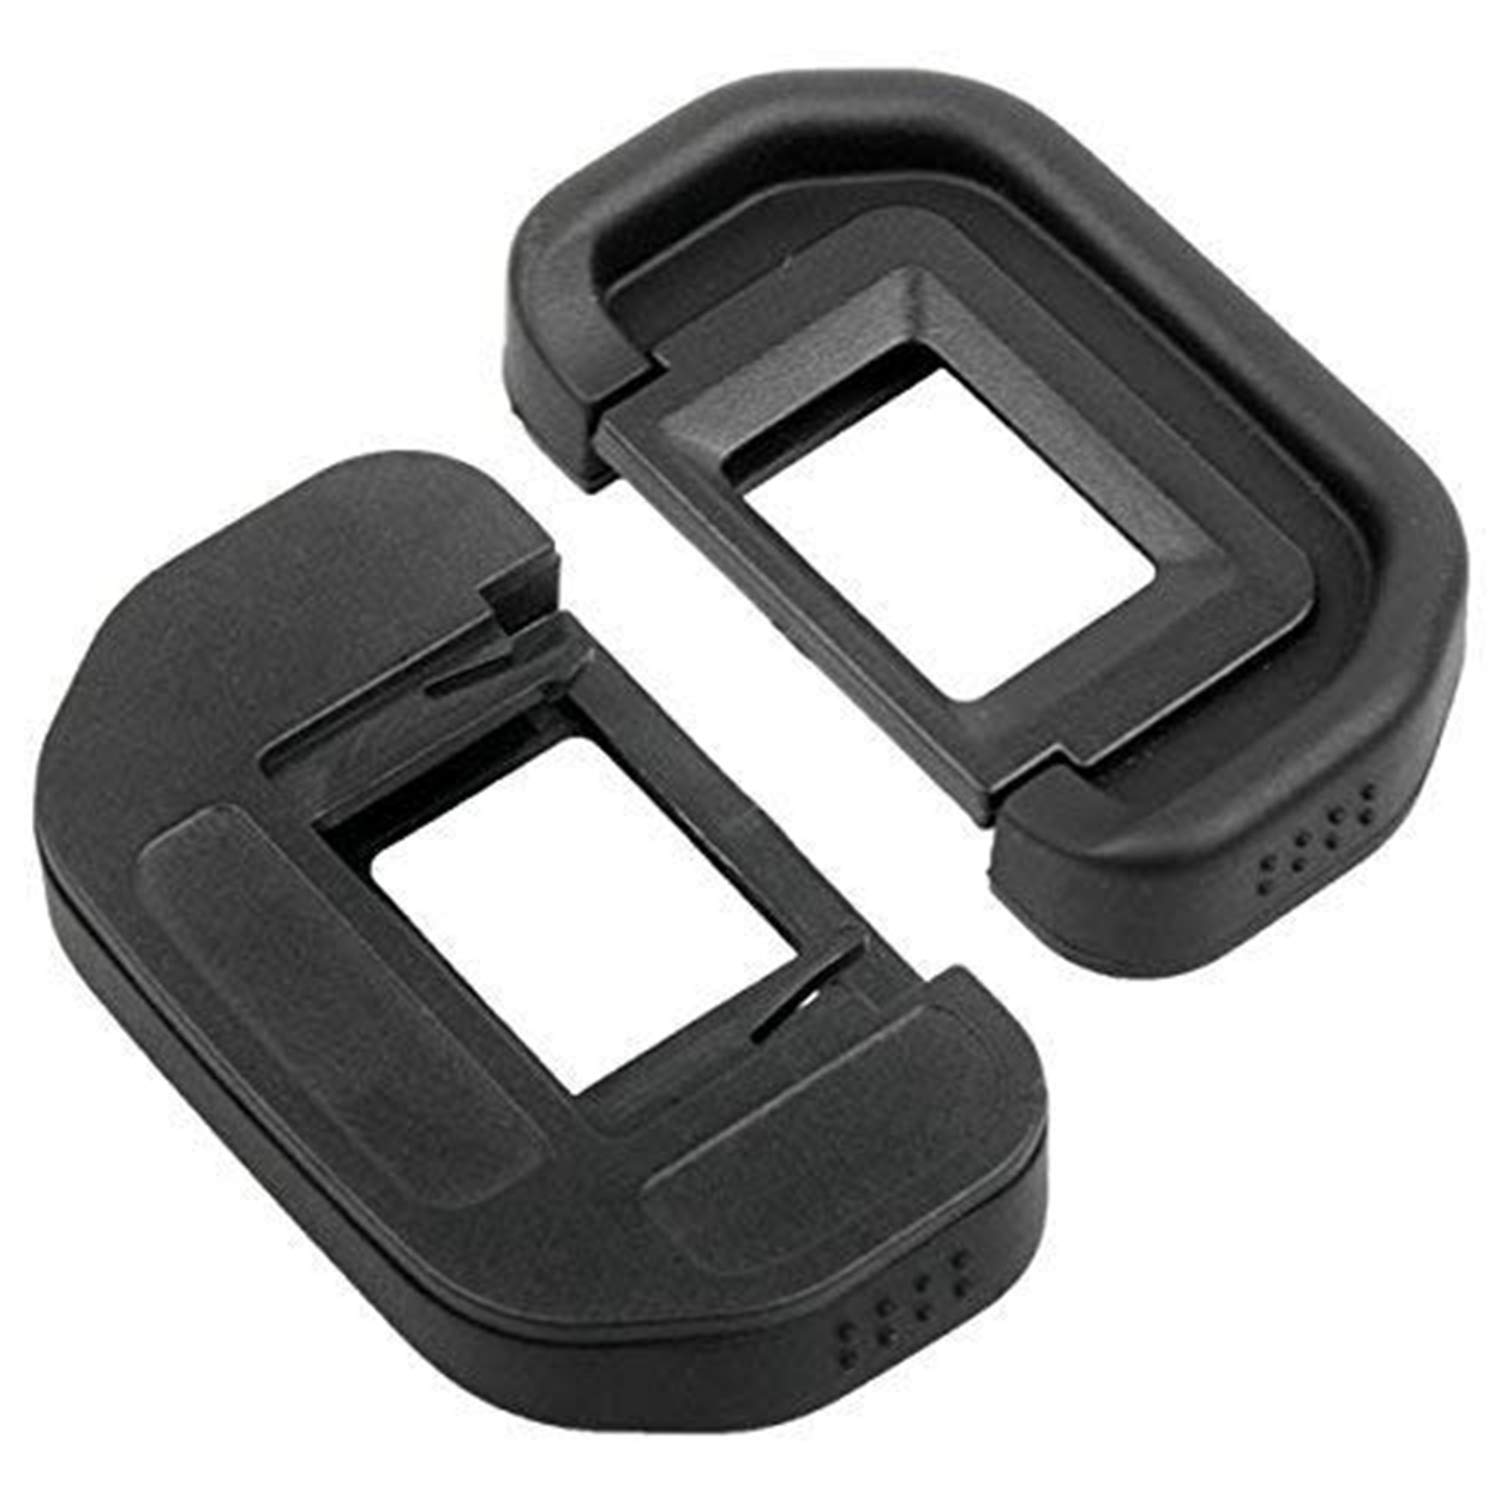 SODIAL Camera Eyepiece Eyecup 18Mm EB Replacement Viewfinder Protector for Canon Eos 80D 70D 60D 77D 50D 5D 5D Mark Ii 6D 6D Mark Ii 40D 30D 20D 20Da 10D 60Da A2 A2E D30 D60 by SODIAL (Image #1)